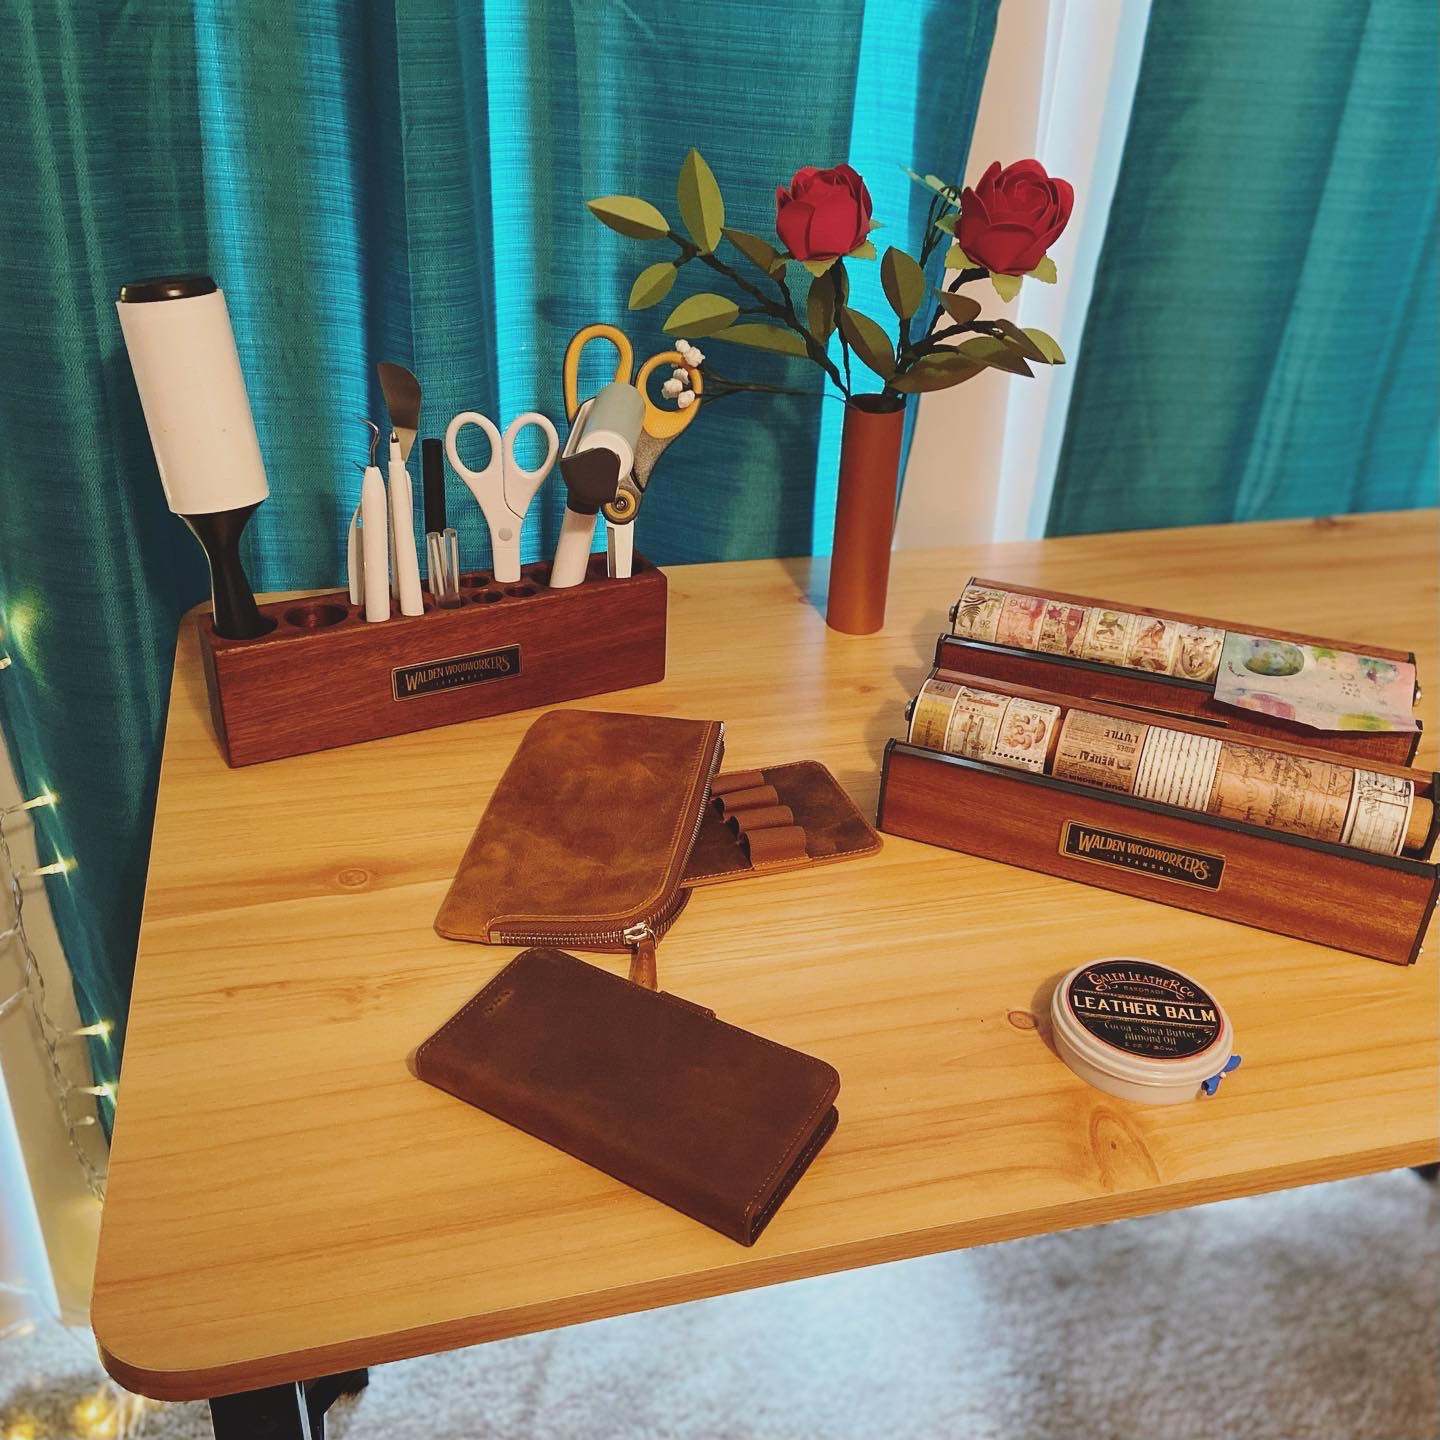 Wooden pen and tool holder, a vase of paper roses, two wooden washi tape dispensers, a leather slip-n-zip pen pouch, a brown leather detachable iPhone case, and a leather balm can be seen arranged on a table